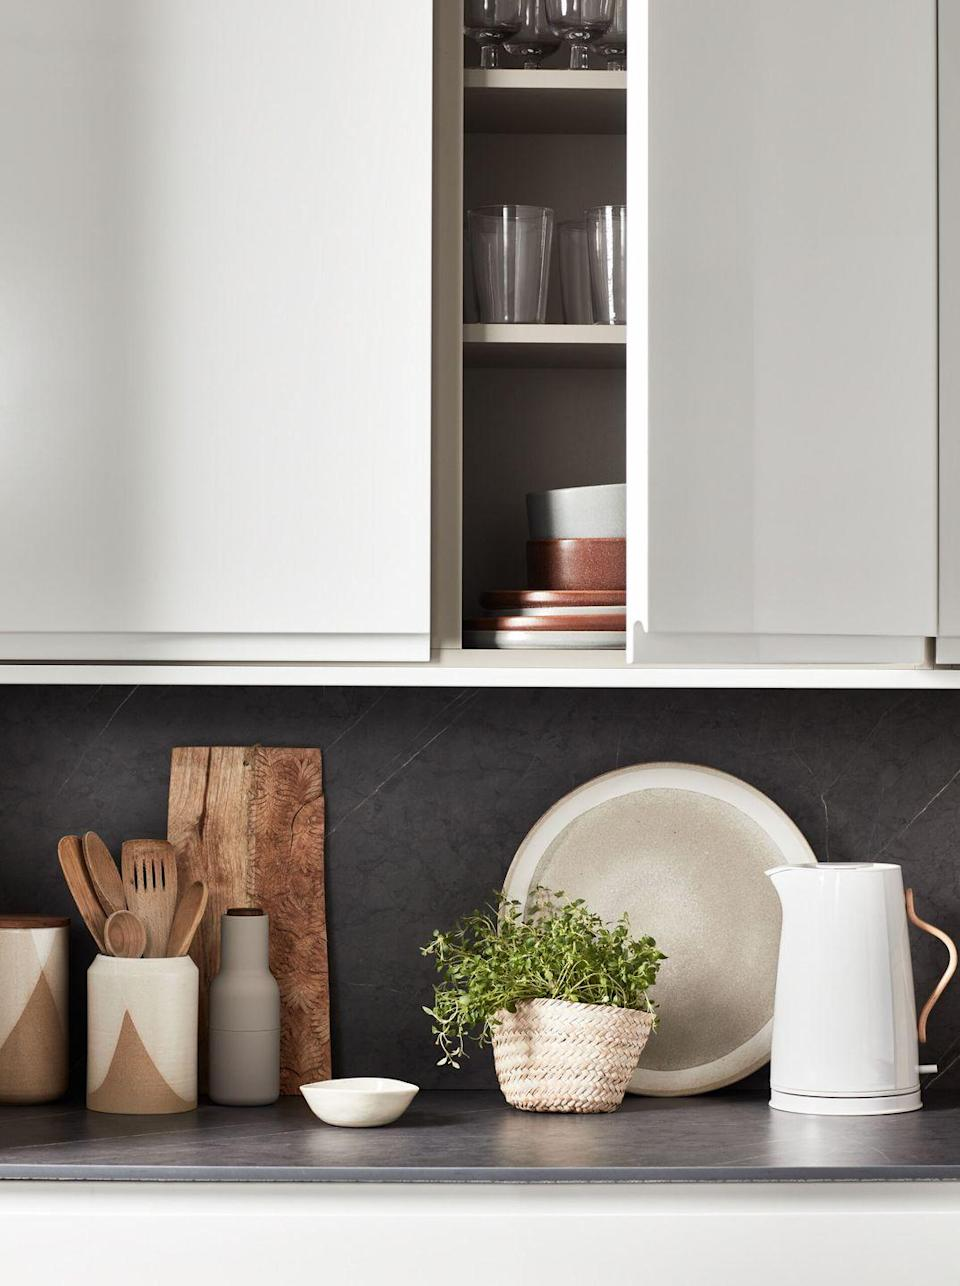 """<p>A grey and white kitchen is a perennially popular colour combination. White kitchens can sit happily with shades of grey, from deep charcoals for a rich contrast, to light blue/greys for a bright and airy colour scheme. <br></p><p>Pictured: <a href=""""https://go.redirectingat.com?id=127X1599956&url=https%3A%2F%2Fwww.homebase.co.uk%2Fkitchens%2Fkitchen-ranges%2Fbermondsey.list&sref=https%3A%2F%2Fwww.housebeautiful.com%2Fuk%2Fdecorate%2Fkitchen%2Fg37409102%2Fwhite-kitchen%2F"""" rel=""""nofollow noopener"""" target=""""_blank"""" data-ylk=""""slk:House Beautiful Bermondsey Kitchen at Homebase"""" class=""""link rapid-noclick-resp"""">House Beautiful Bermondsey Kitchen at Homebase</a></p>"""